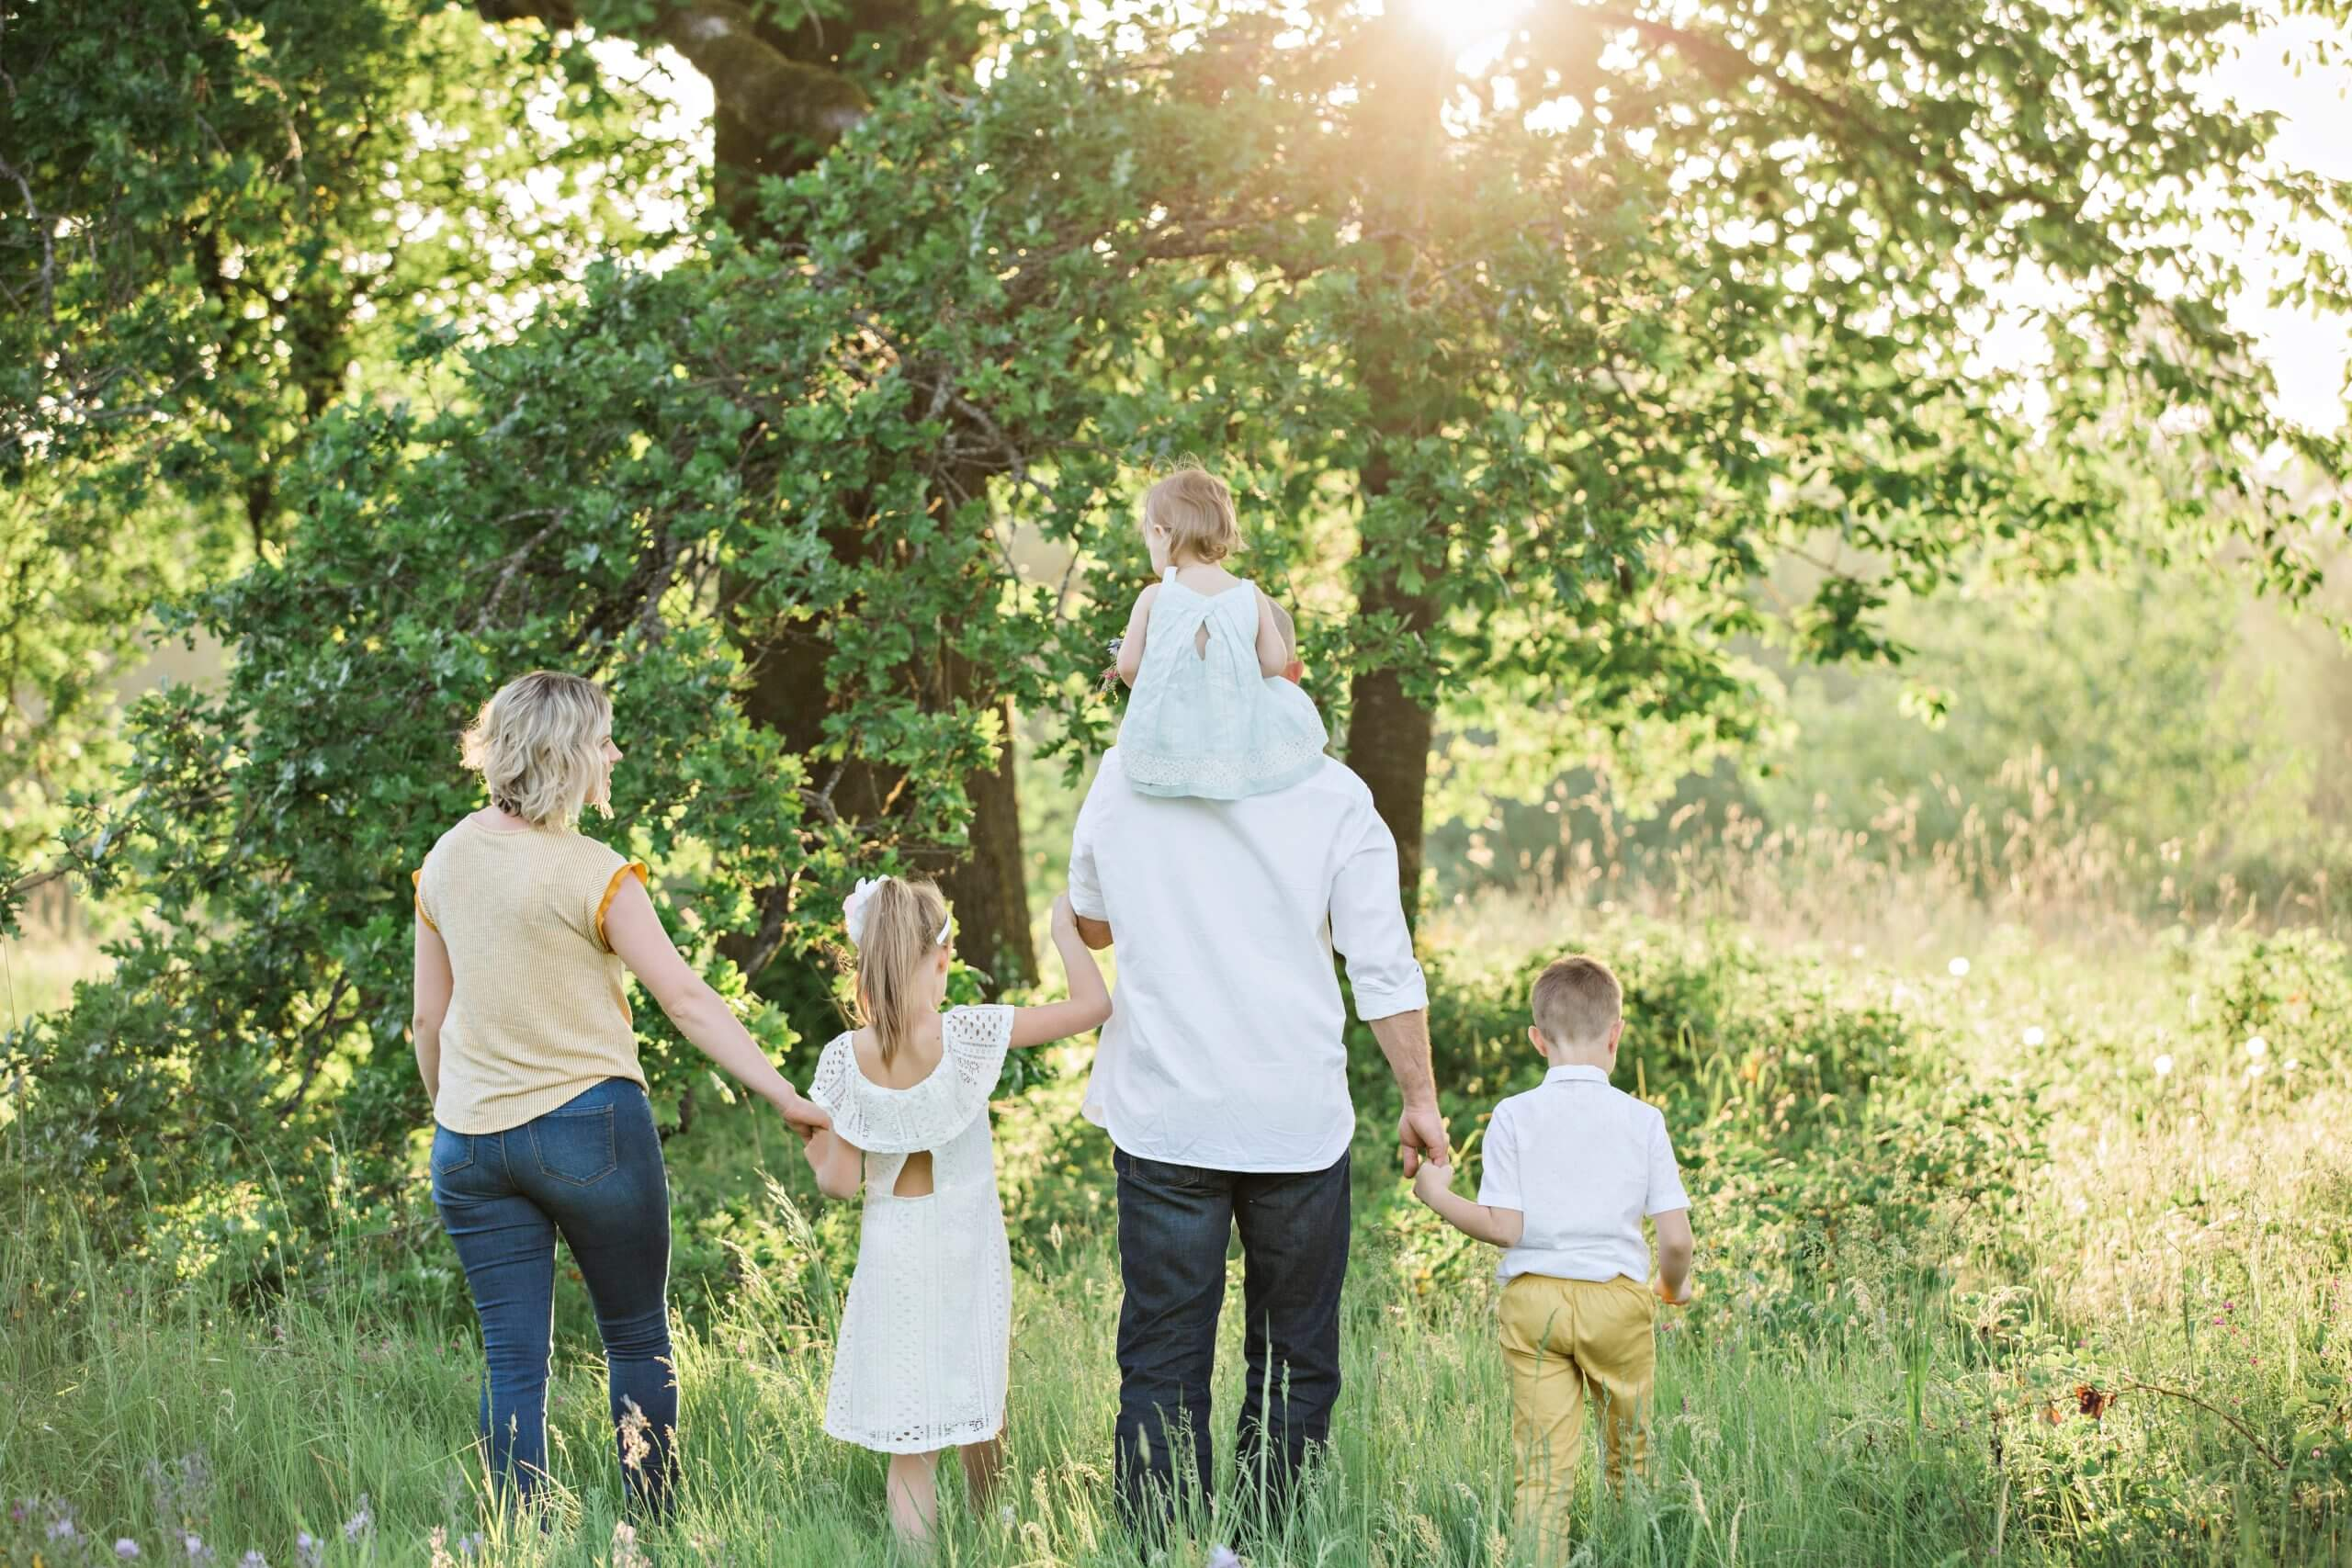 10 tips on being an eco-friendly family!